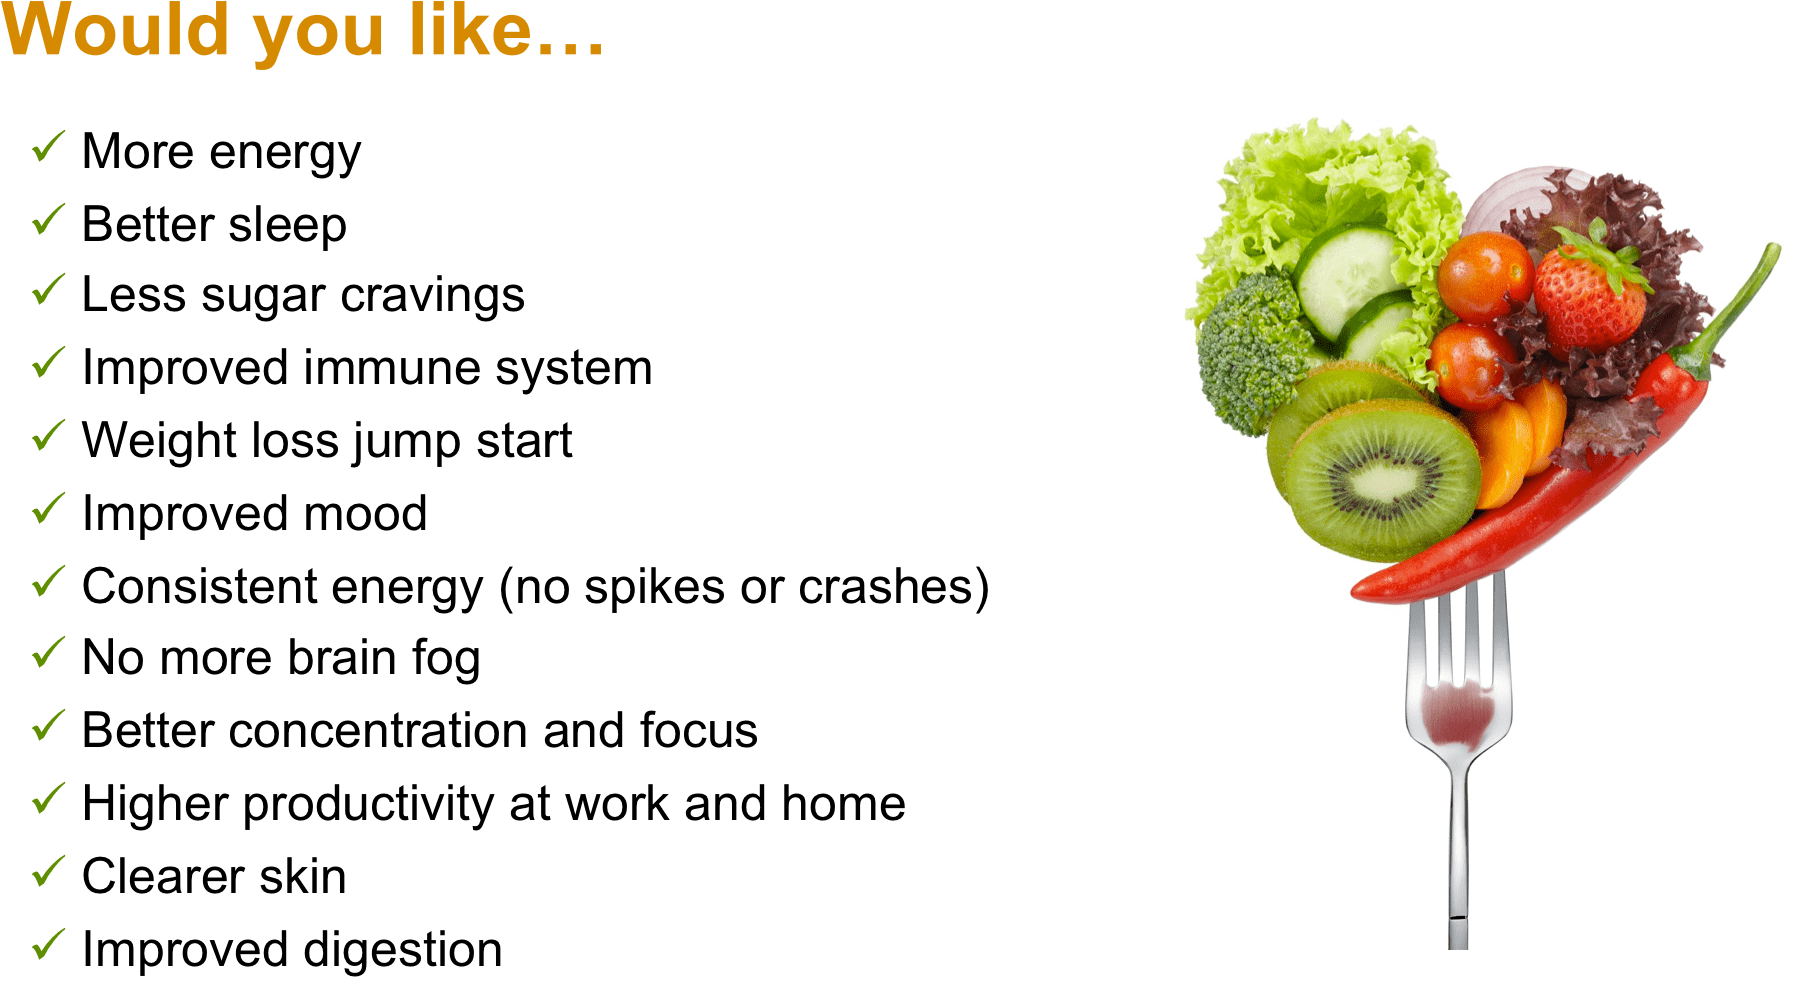 Why Should You Eat Healthy Persuasive Diet Meal Plan For